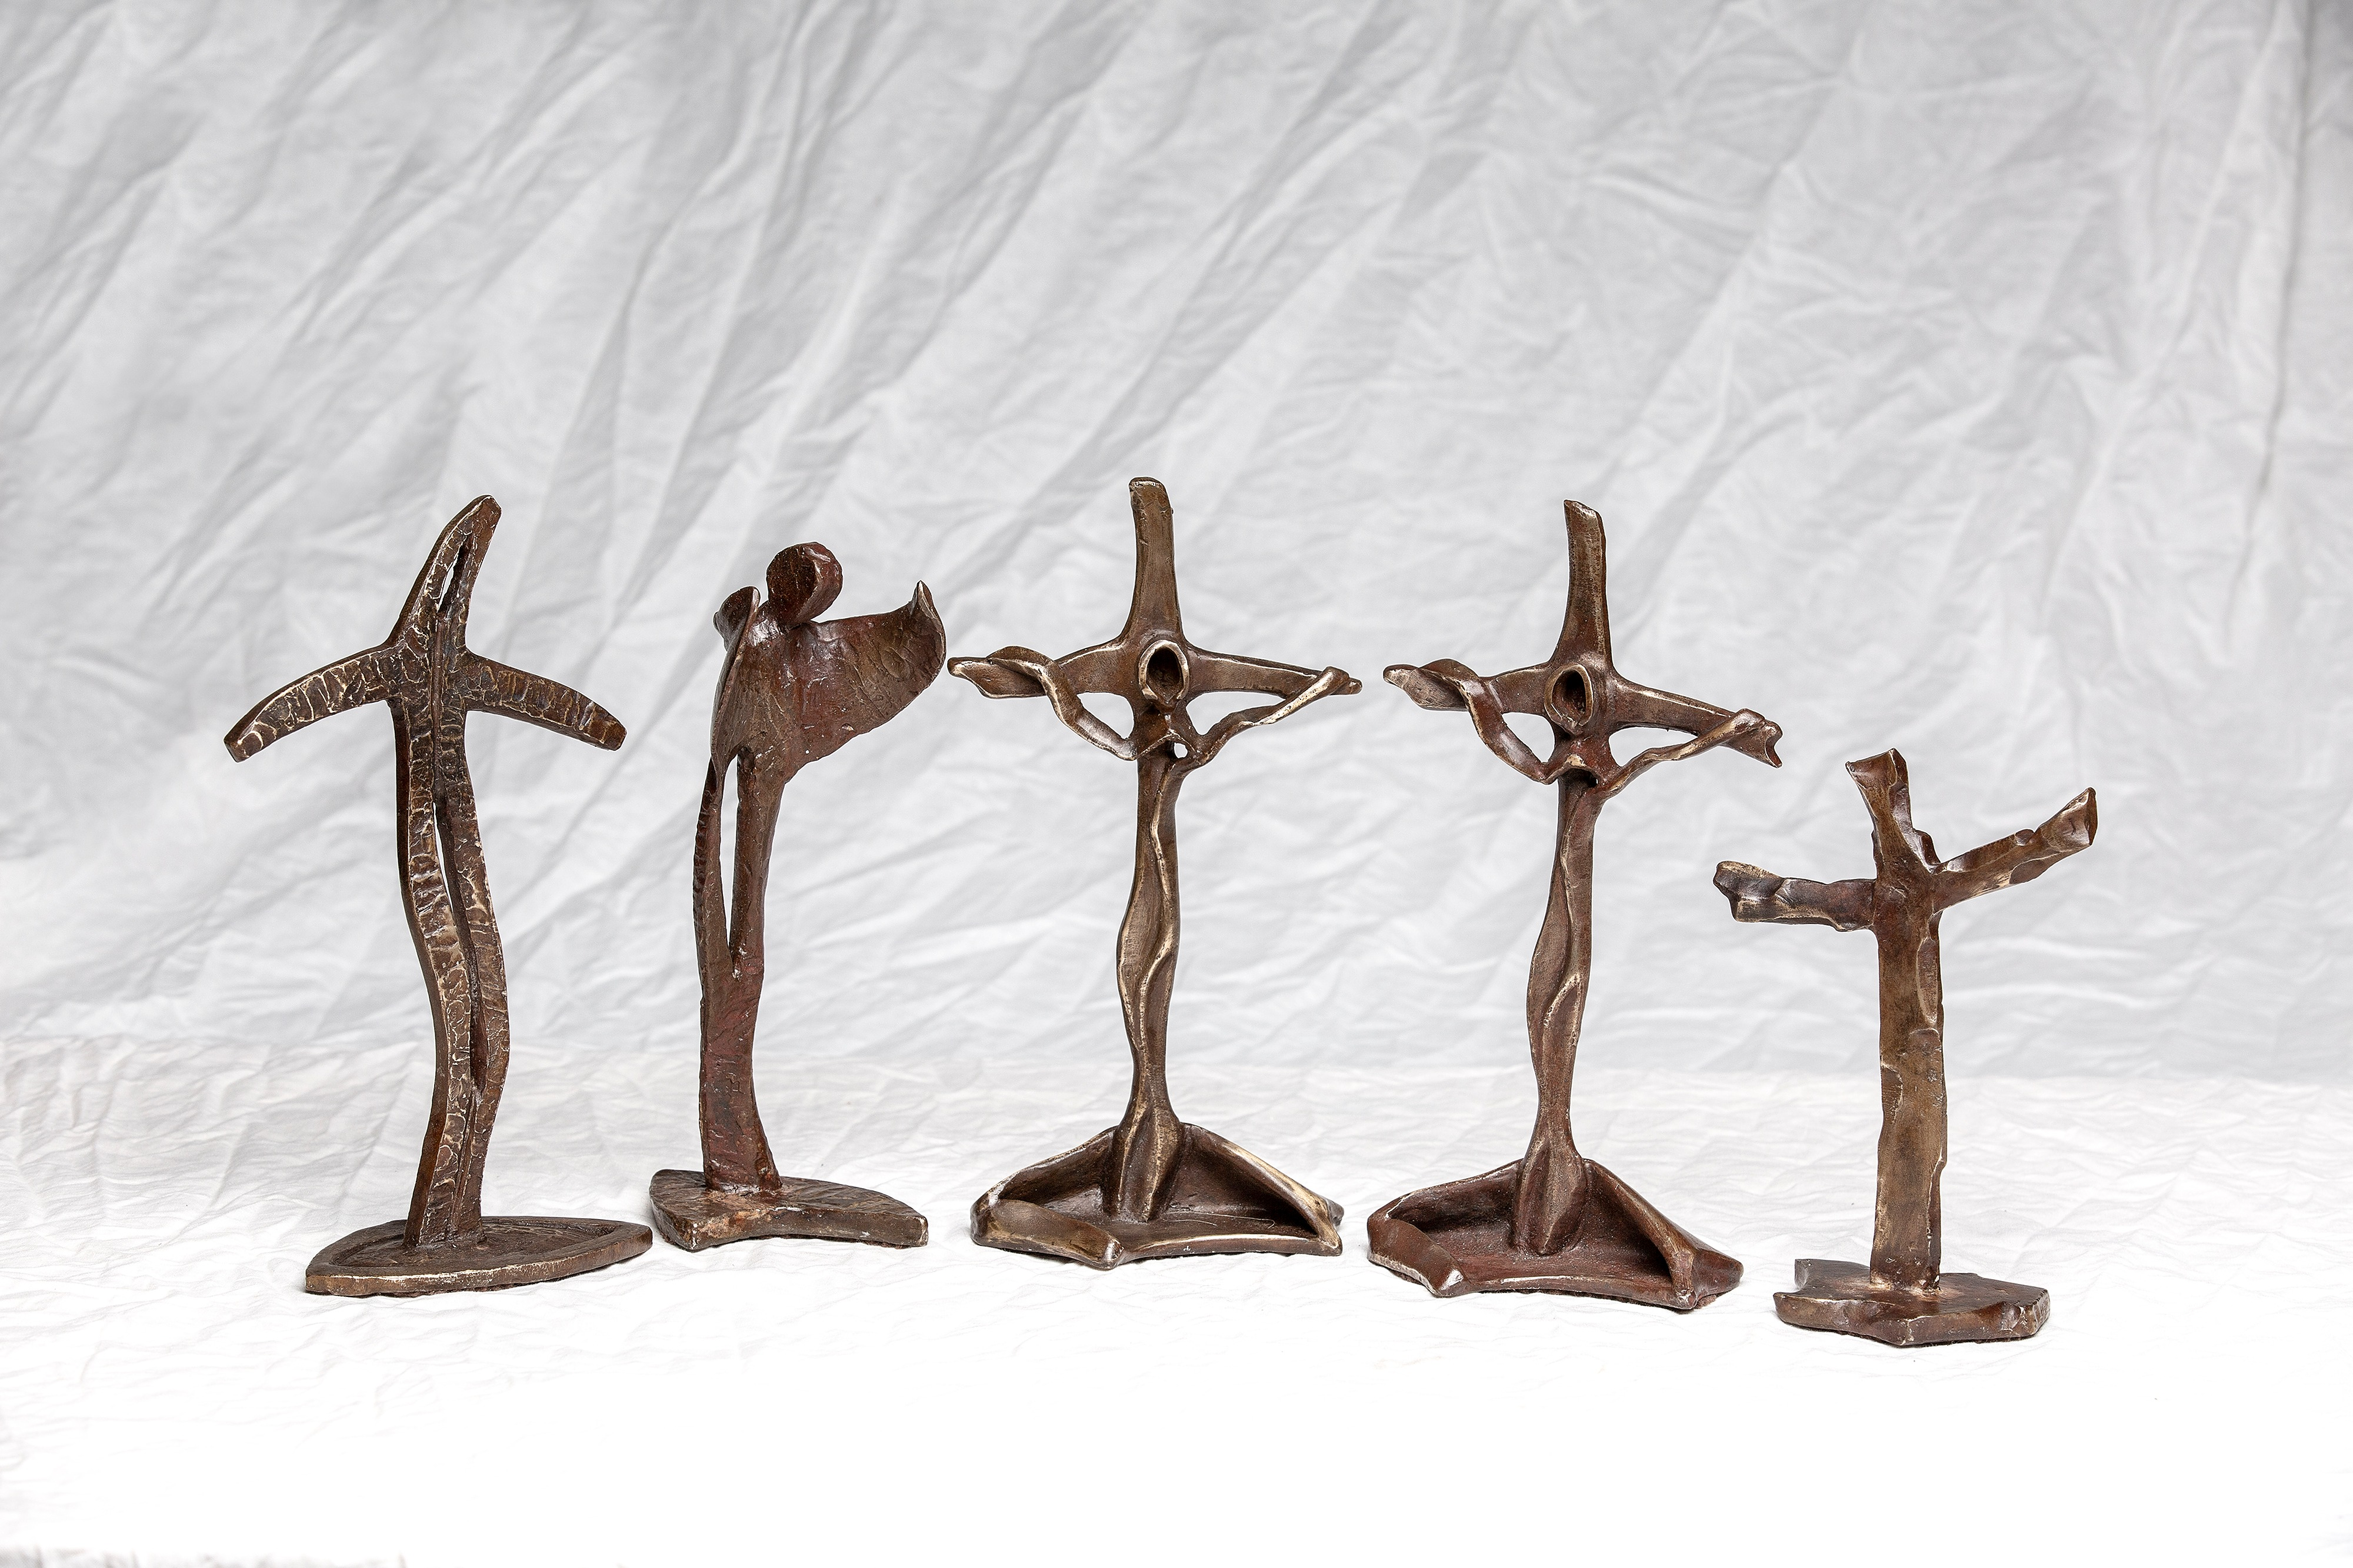 Crosses and angel by Robert Dewaele | ArtworkNetwork.com